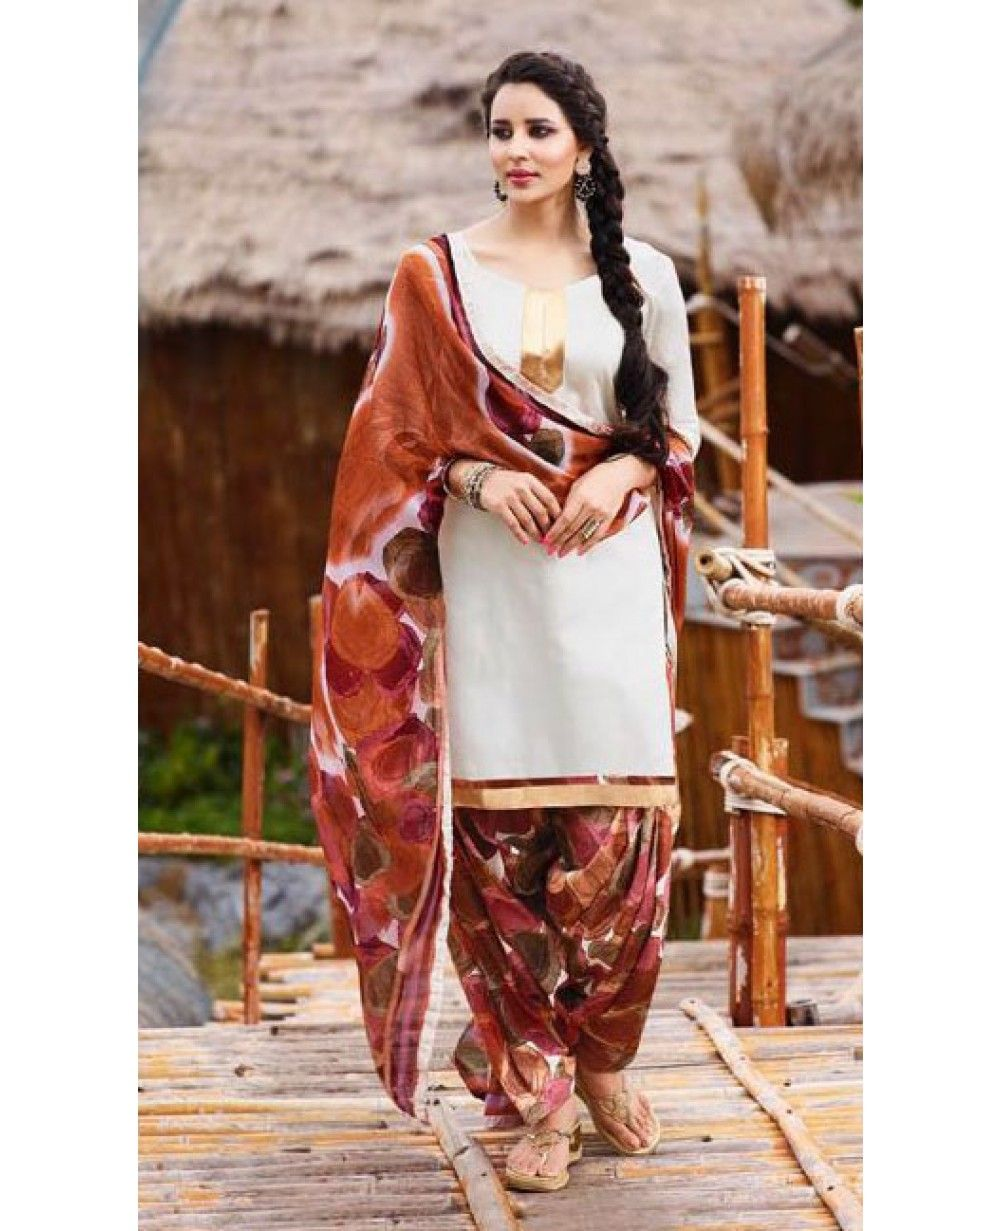 98e49b4fed Look every bit like a Punjabi kudi in this Glace Cotton patiala style  salwar suit. Match the dress with bangles and matching drop earrings to  compliment ...